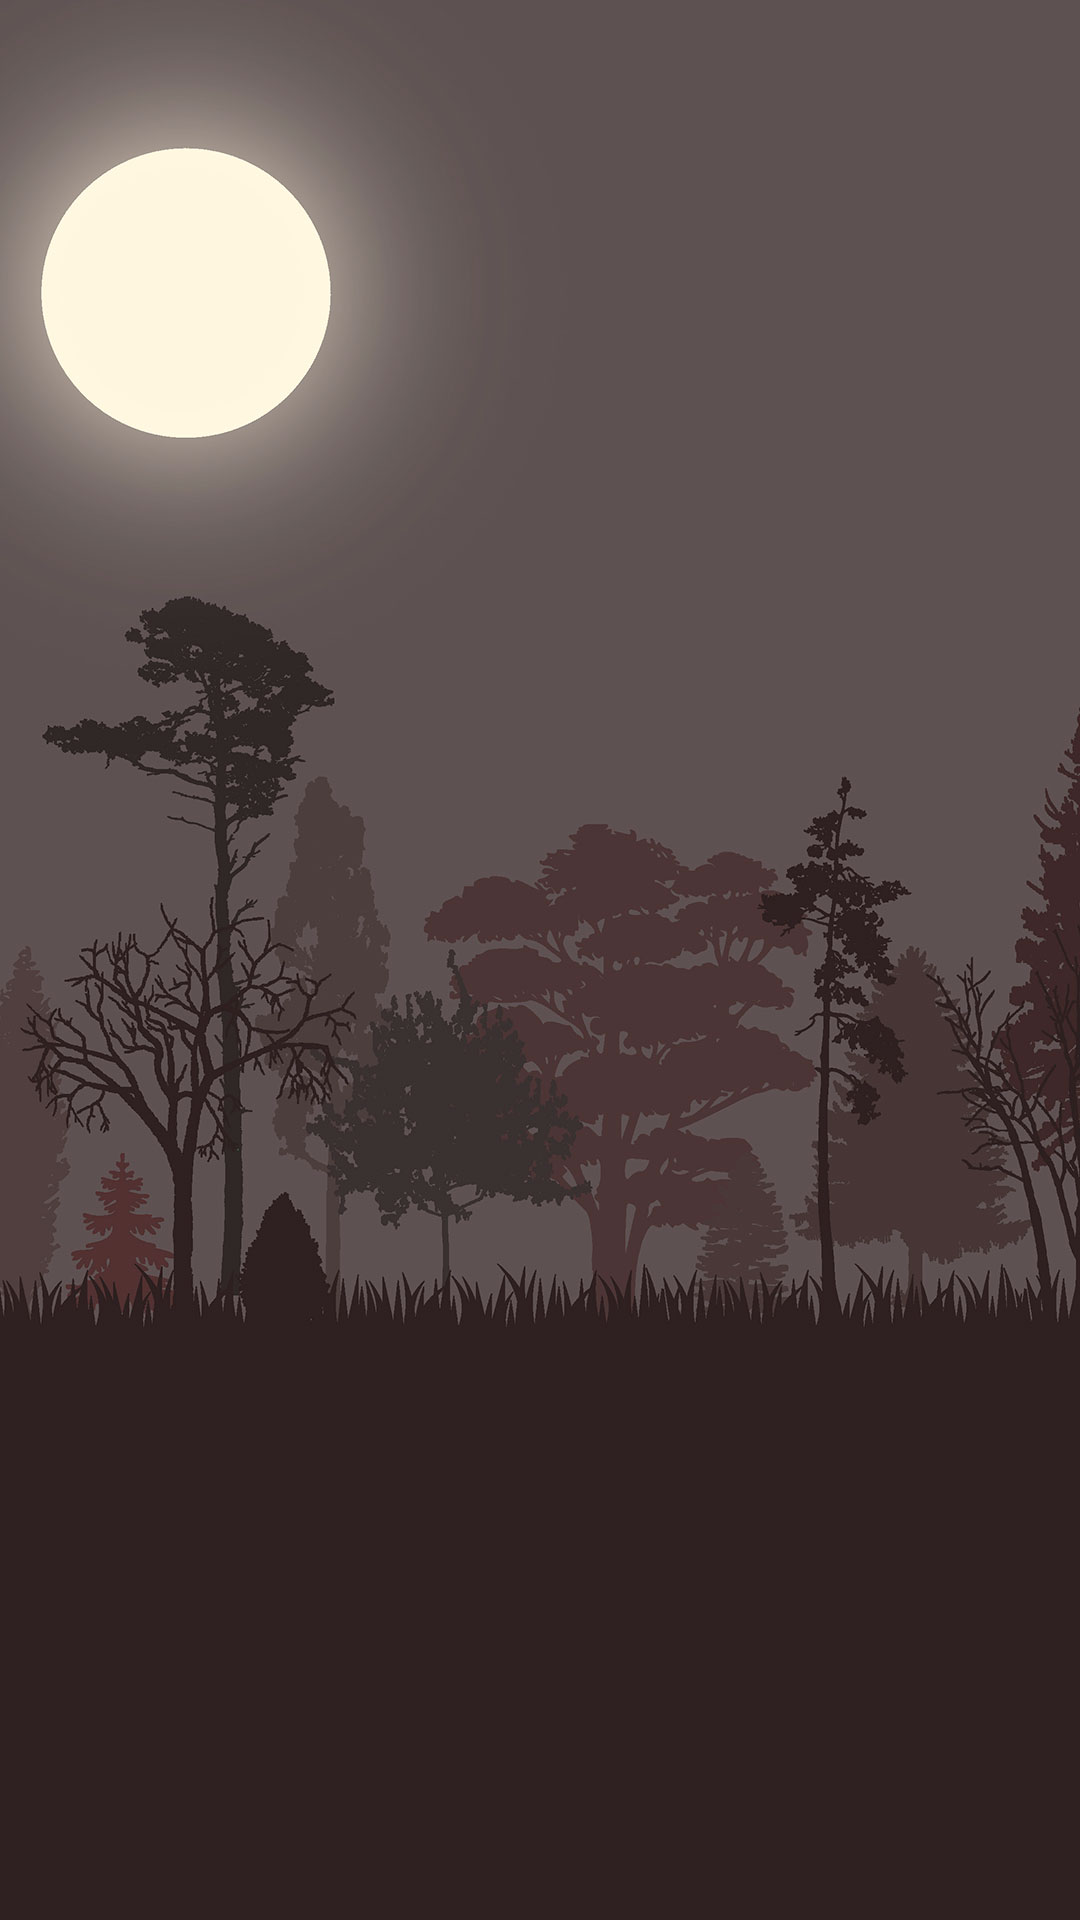 iPhone wallpaper drawing forest Drawing